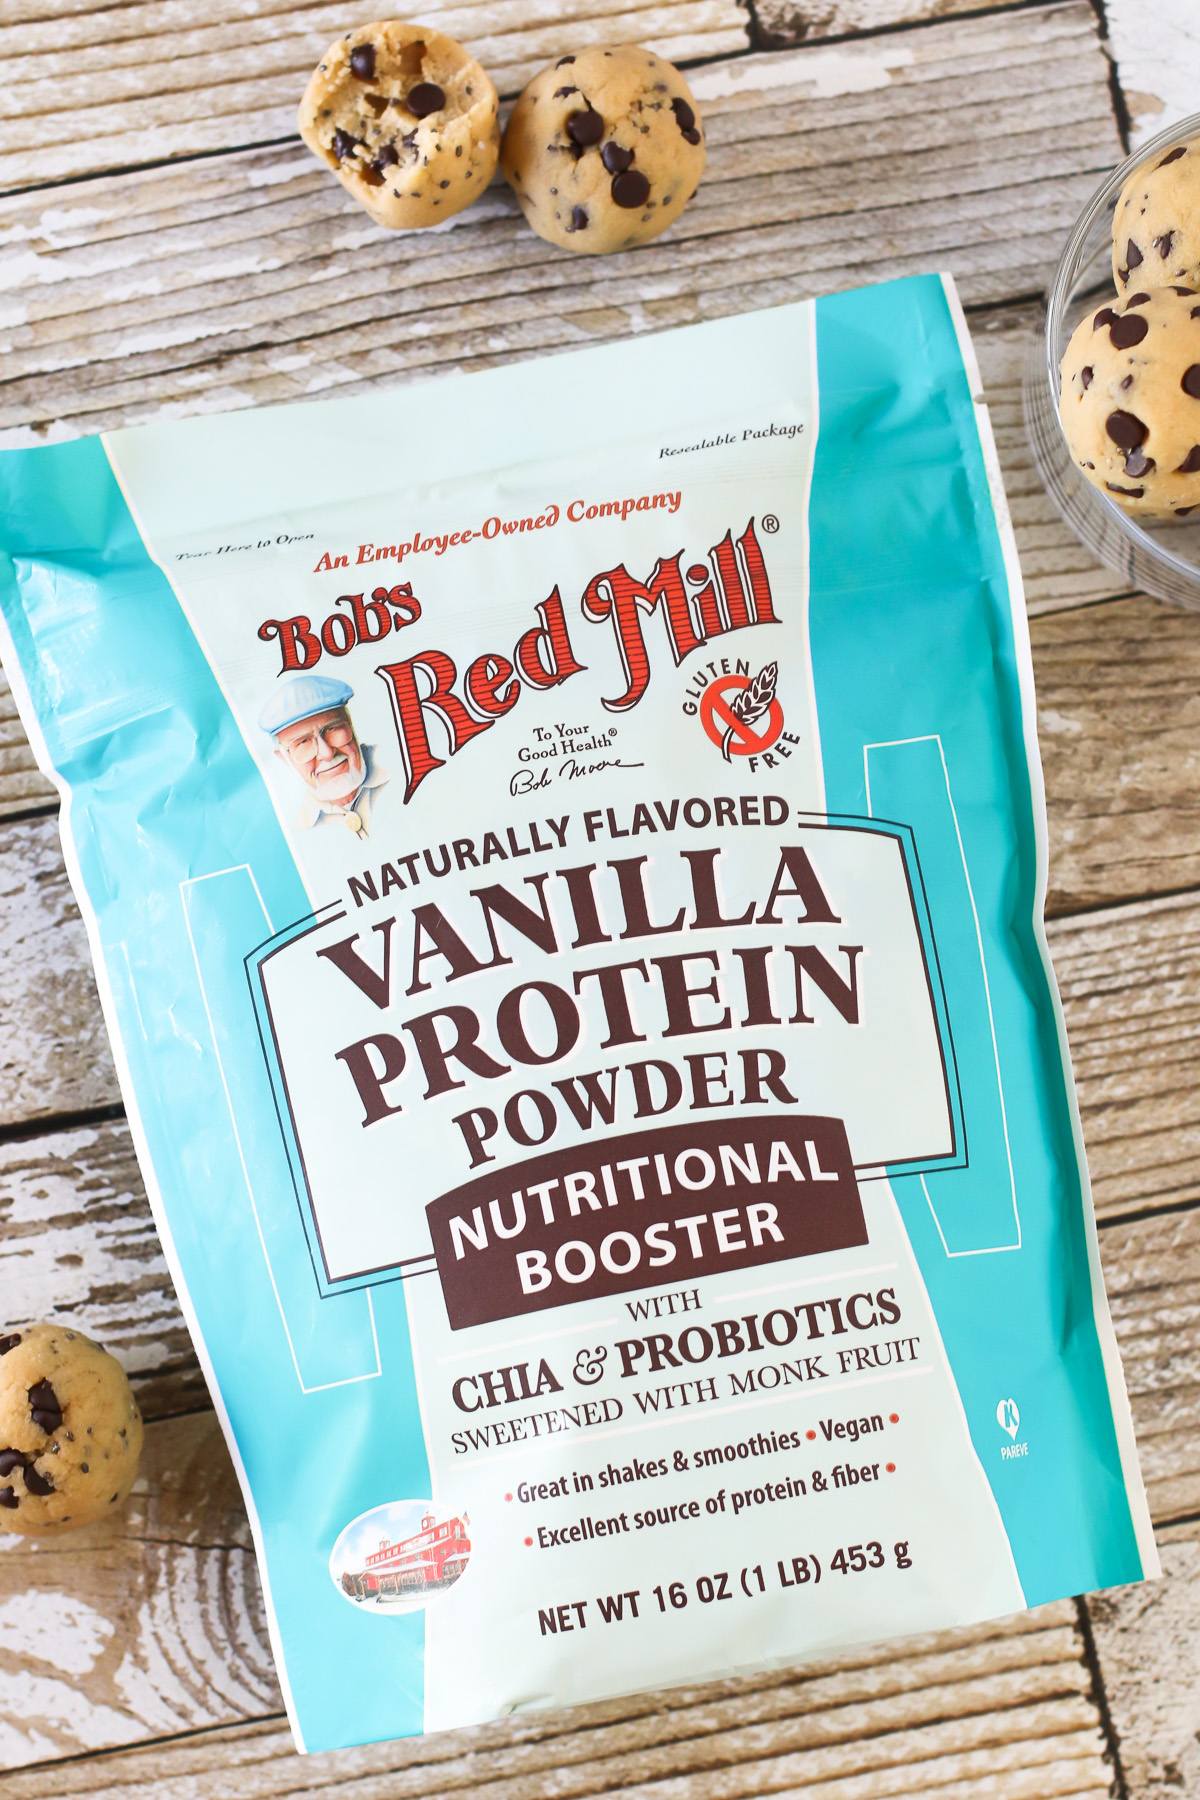 Chocolate Chip Cookie Dough Protein Bites. Made with Bob's Red Mill vanilla protein powder, these no-bake protein bites tastes just like chocolate chip cookie dough!